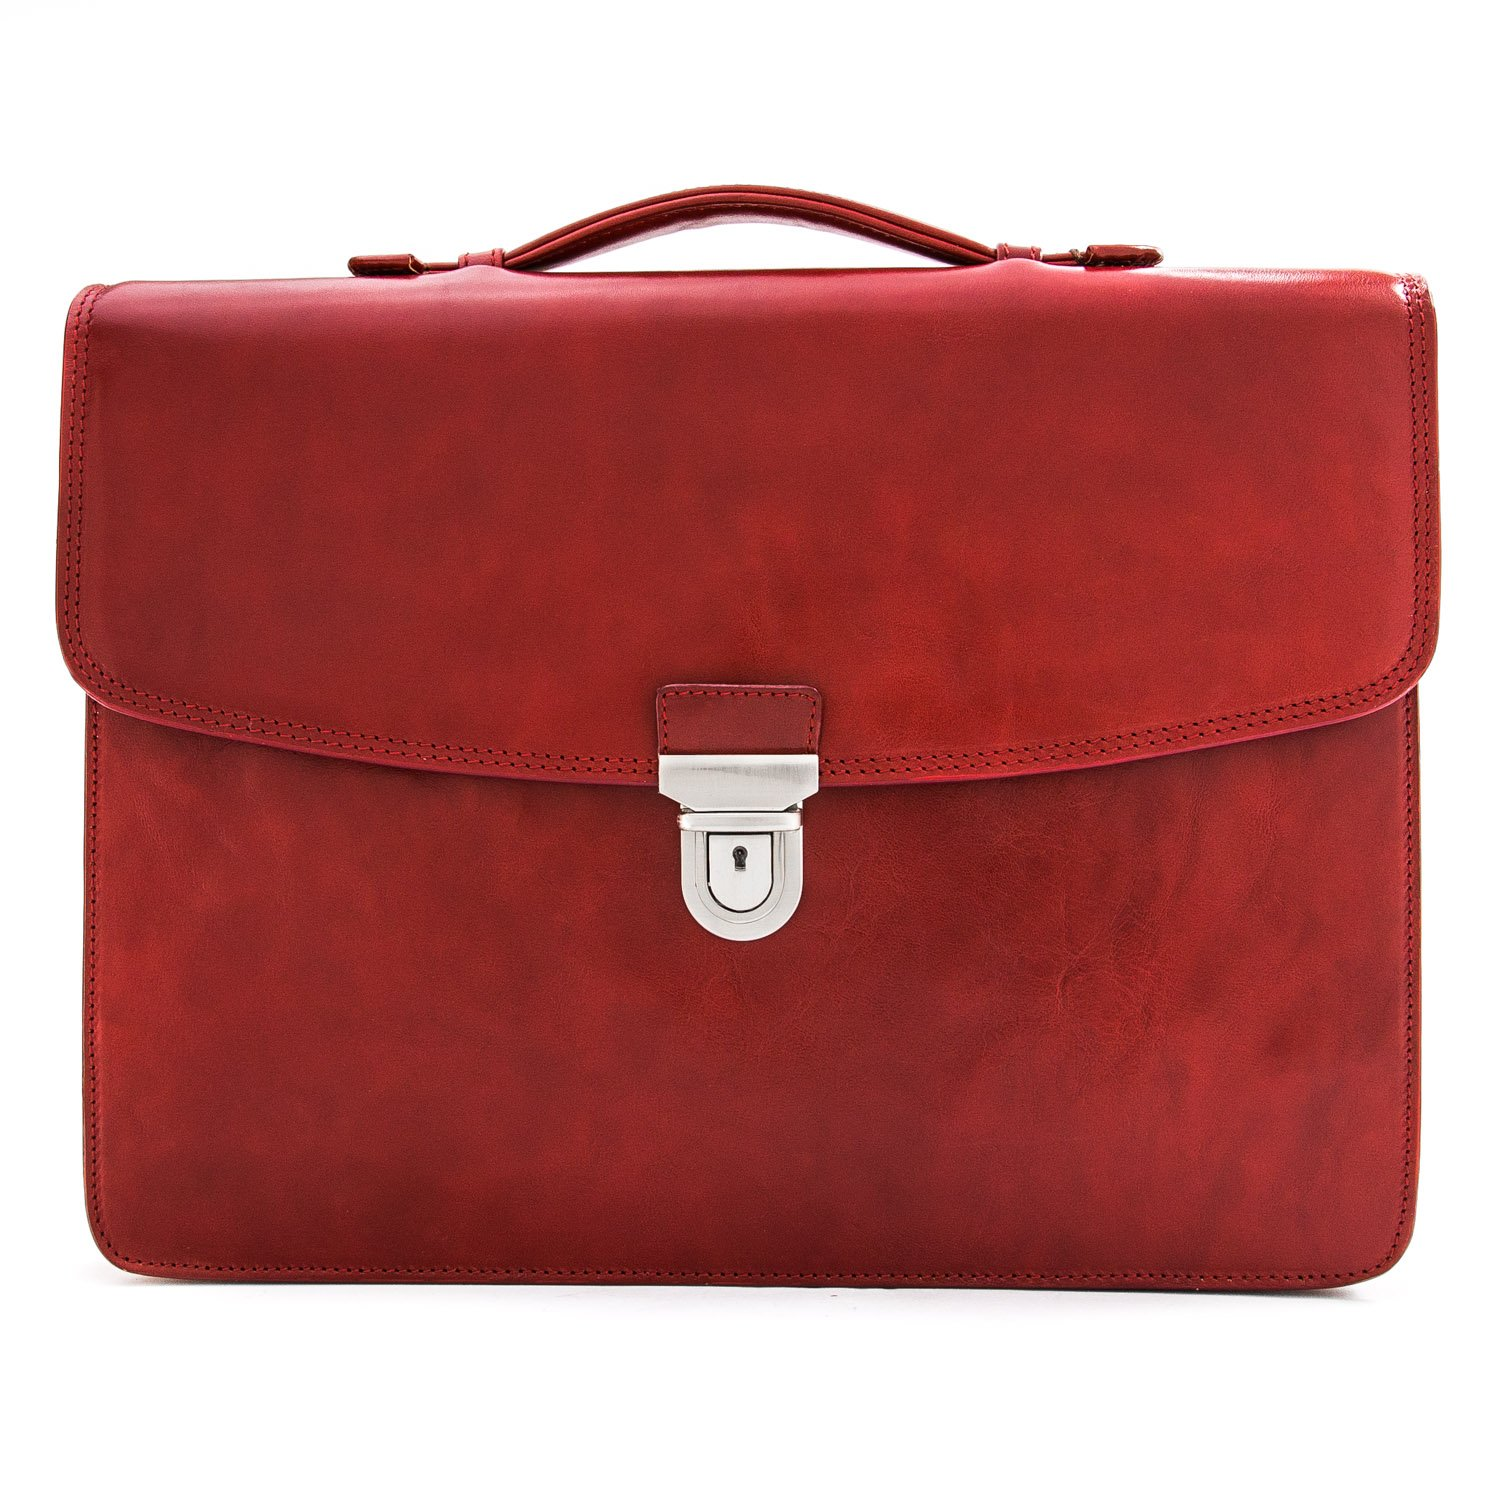 CUSTOM PERSONALIZED INITIALS ENGRAVING Tony Perotti Mens Italian Leather Alfero Single Compartment Document Briefcase in Red